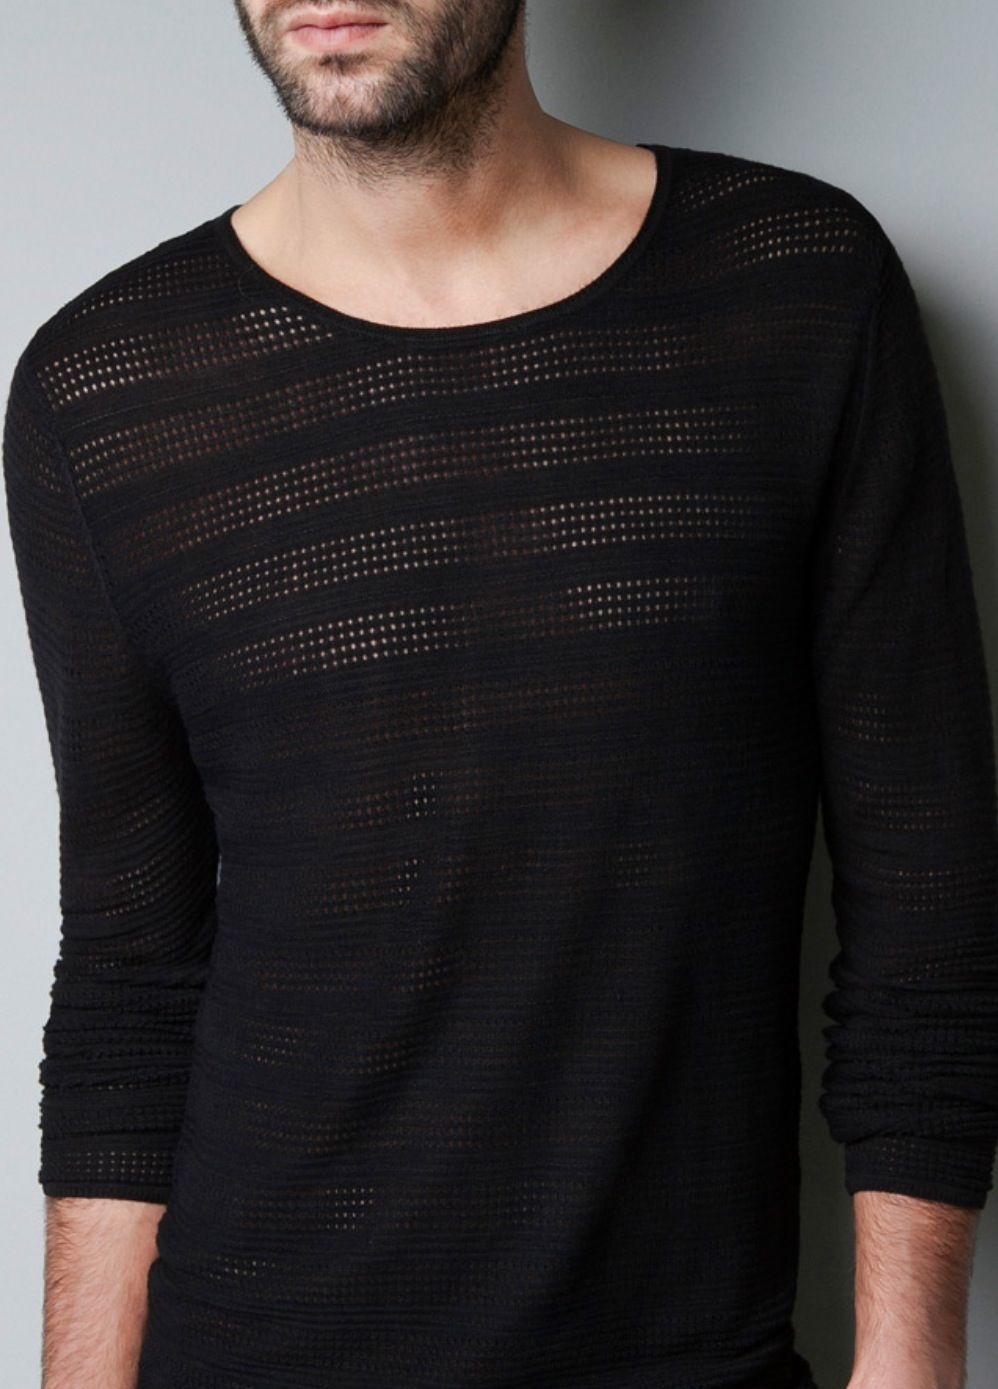 Men/'s Long Sleeve Black//White Mesh Sheer T-shirt Transparent Fishnet Te EDN